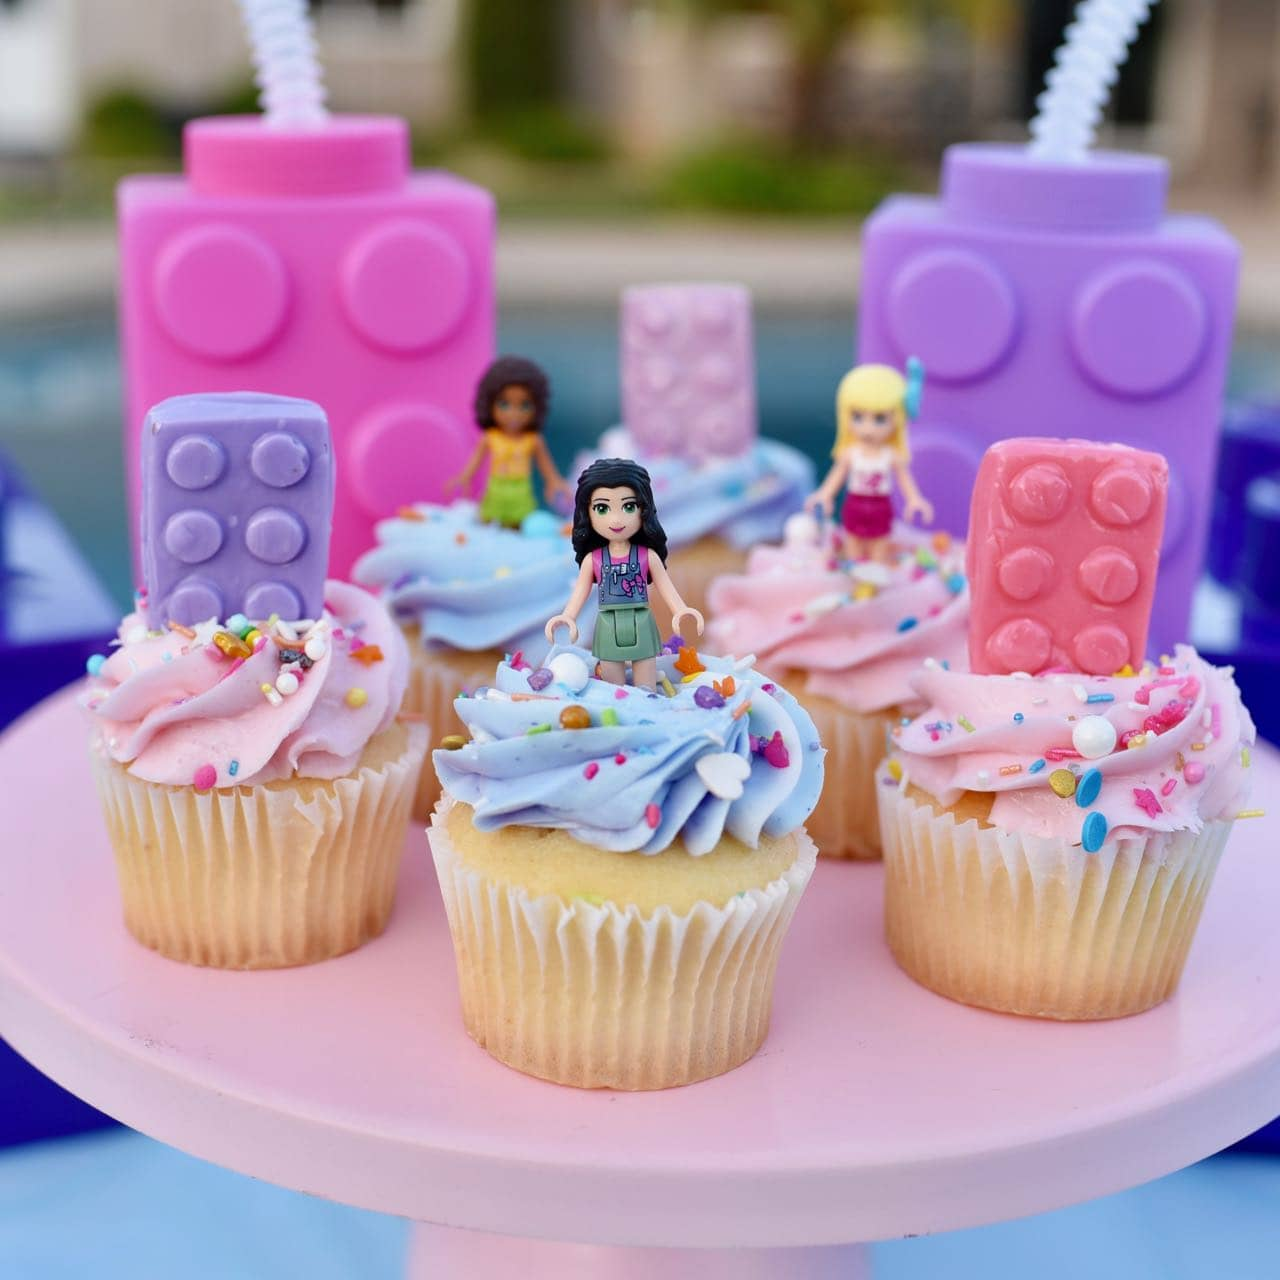 Lego Friends Party Poolside To Celebrate The End Of Summer Make Life Lovely